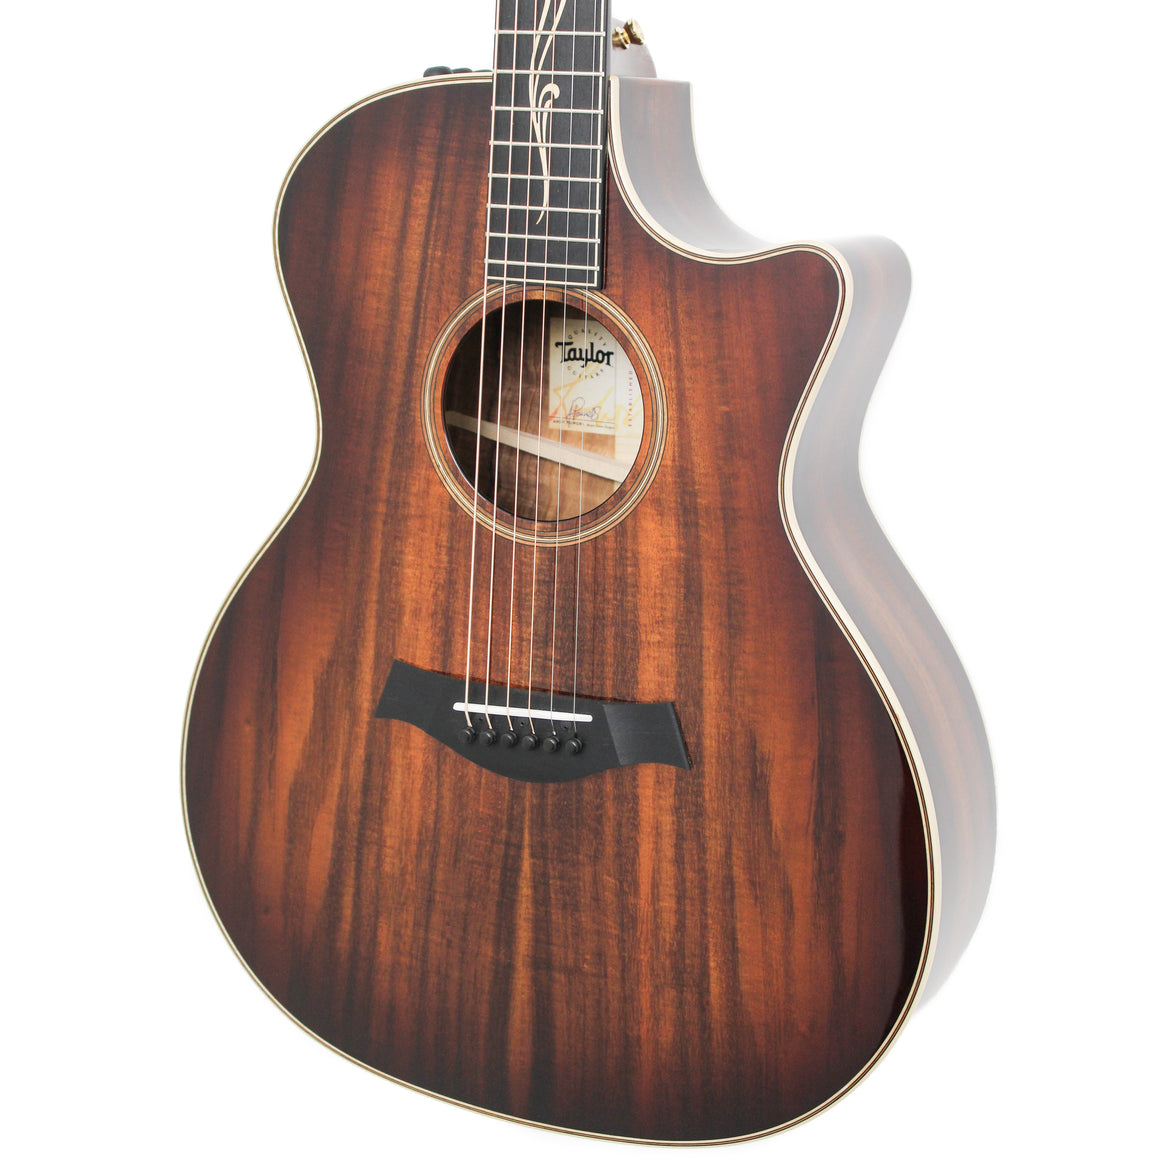 Taylor K24ce 2018 V-Class Bracing Electro Acoustic Guitar with Taylor hard case